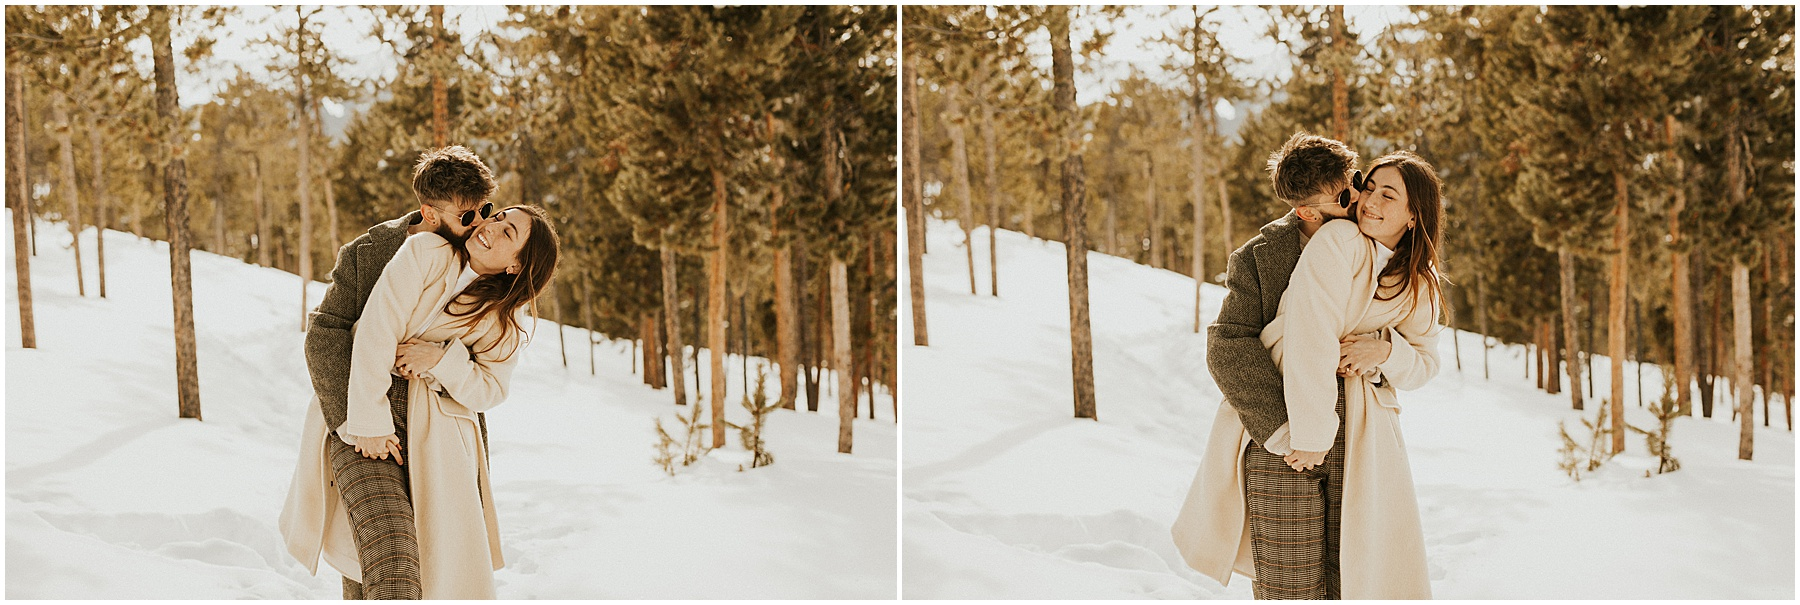 Proposal and engagement session in Breckenridge, Colorado Saphire Point_0396.jpg